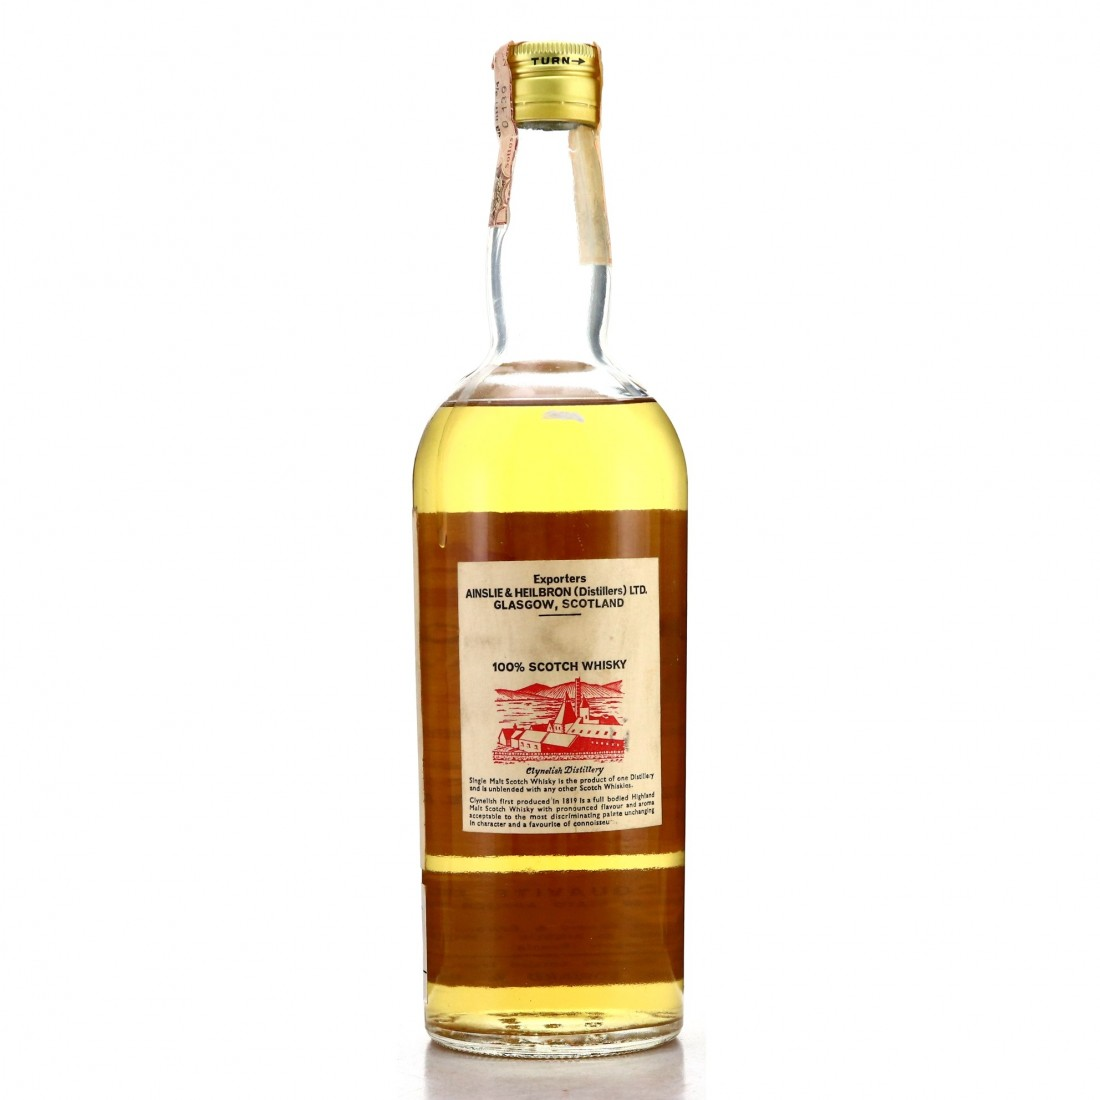 Clynelish 12 Year Old Ainslie and Heilbron Cask Strength 1969 / Edward and Edward - Bottle No.2